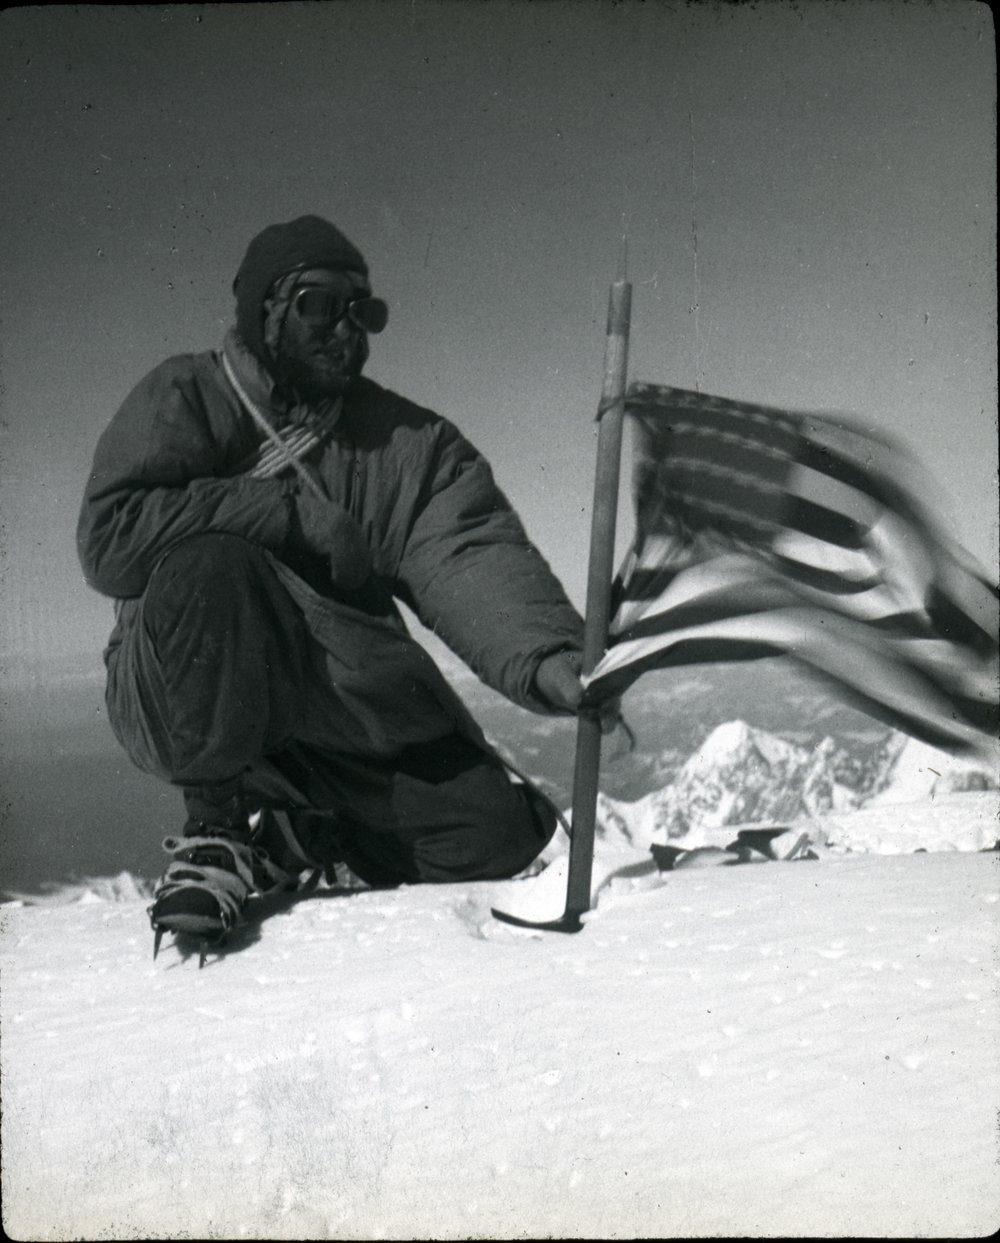 Moore on Summit